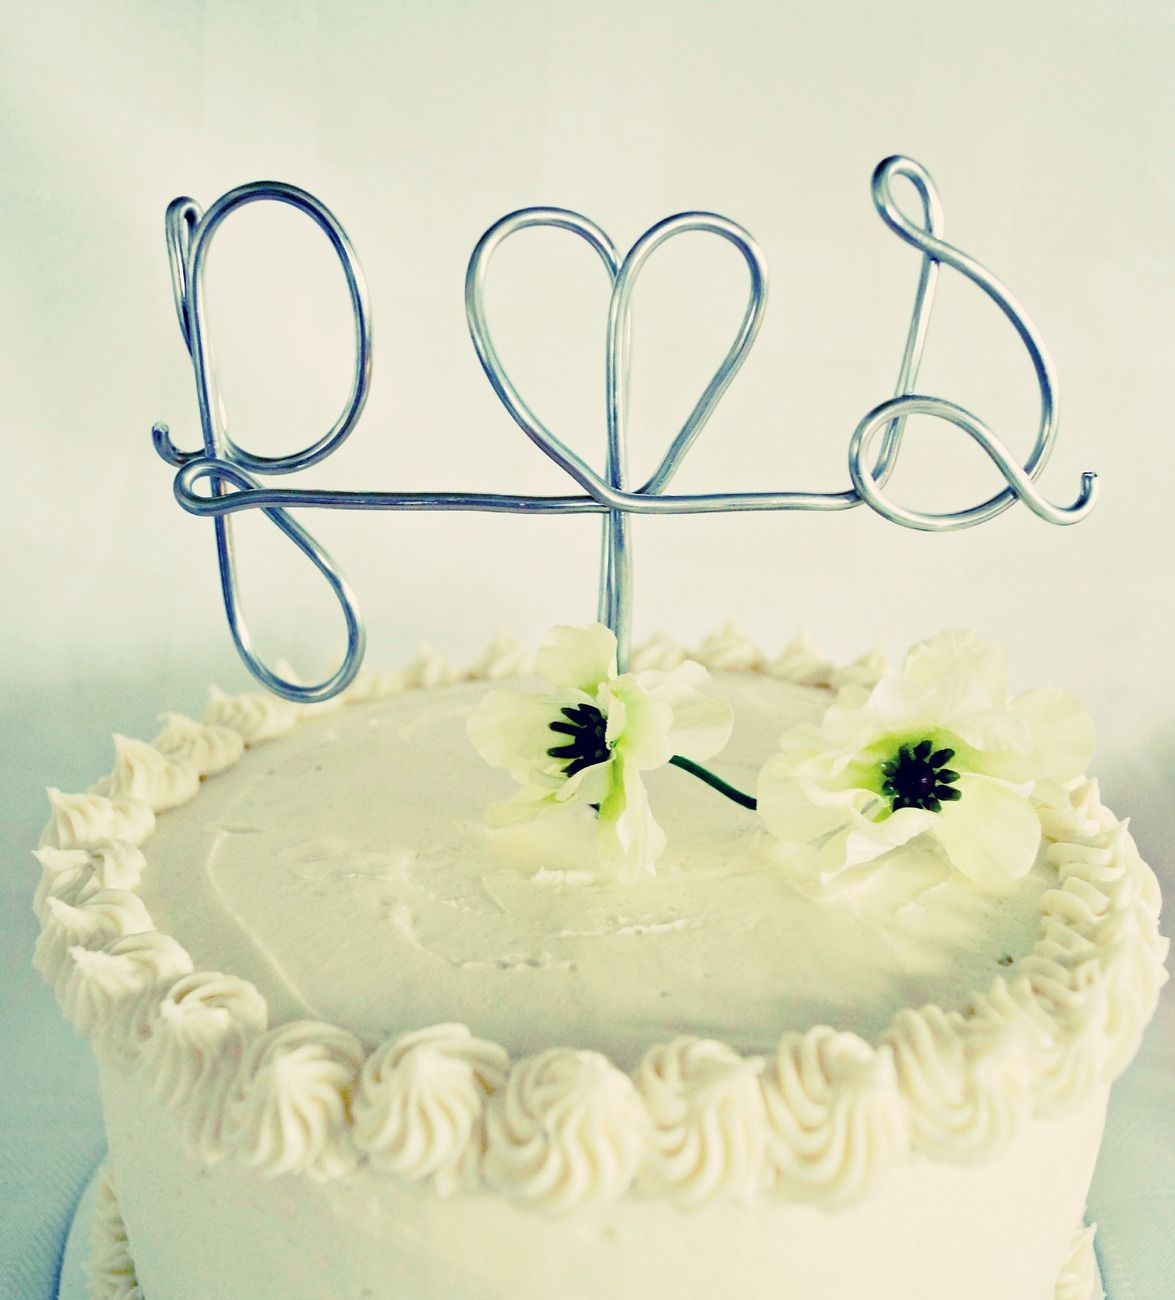 Custom Personalized Wire Wedding Cake Topper - Initials - Monogram ...